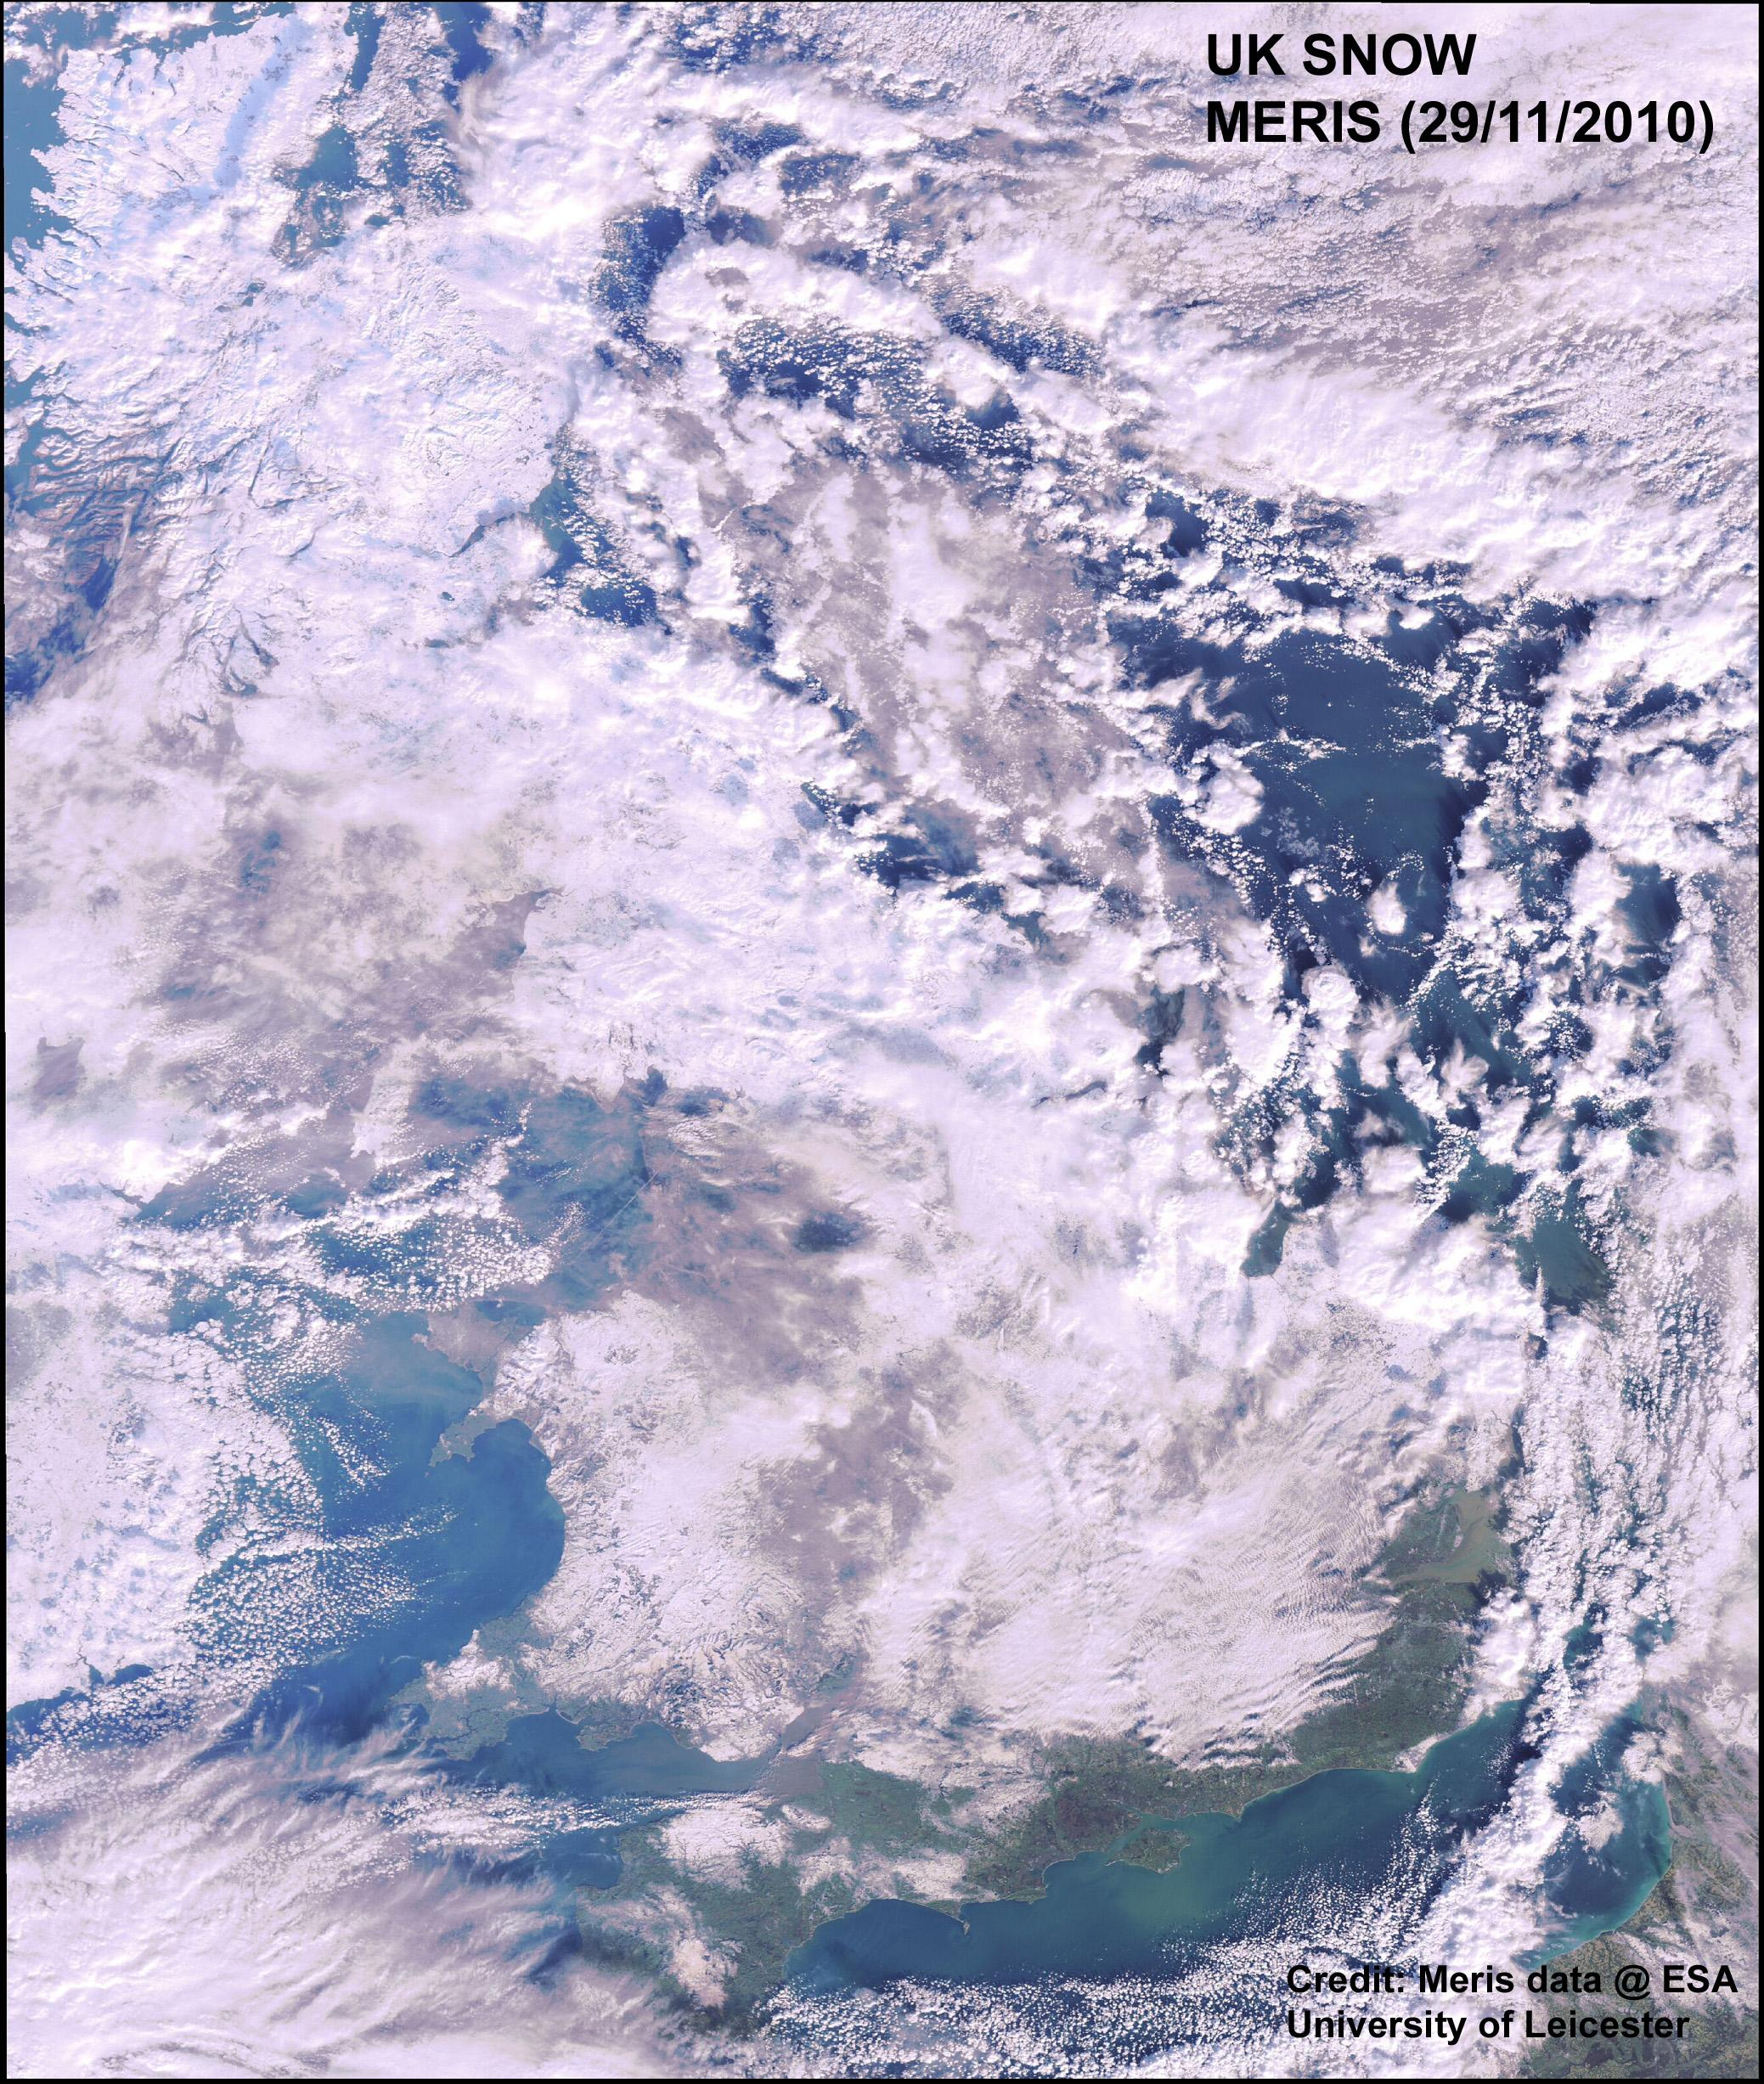 This is an image of snow-bound UK from space by MERIS on Nov. 29.  Credit: MERIS 29 November 2010. Credit: MERIS data @ ESA, and University of Leicester